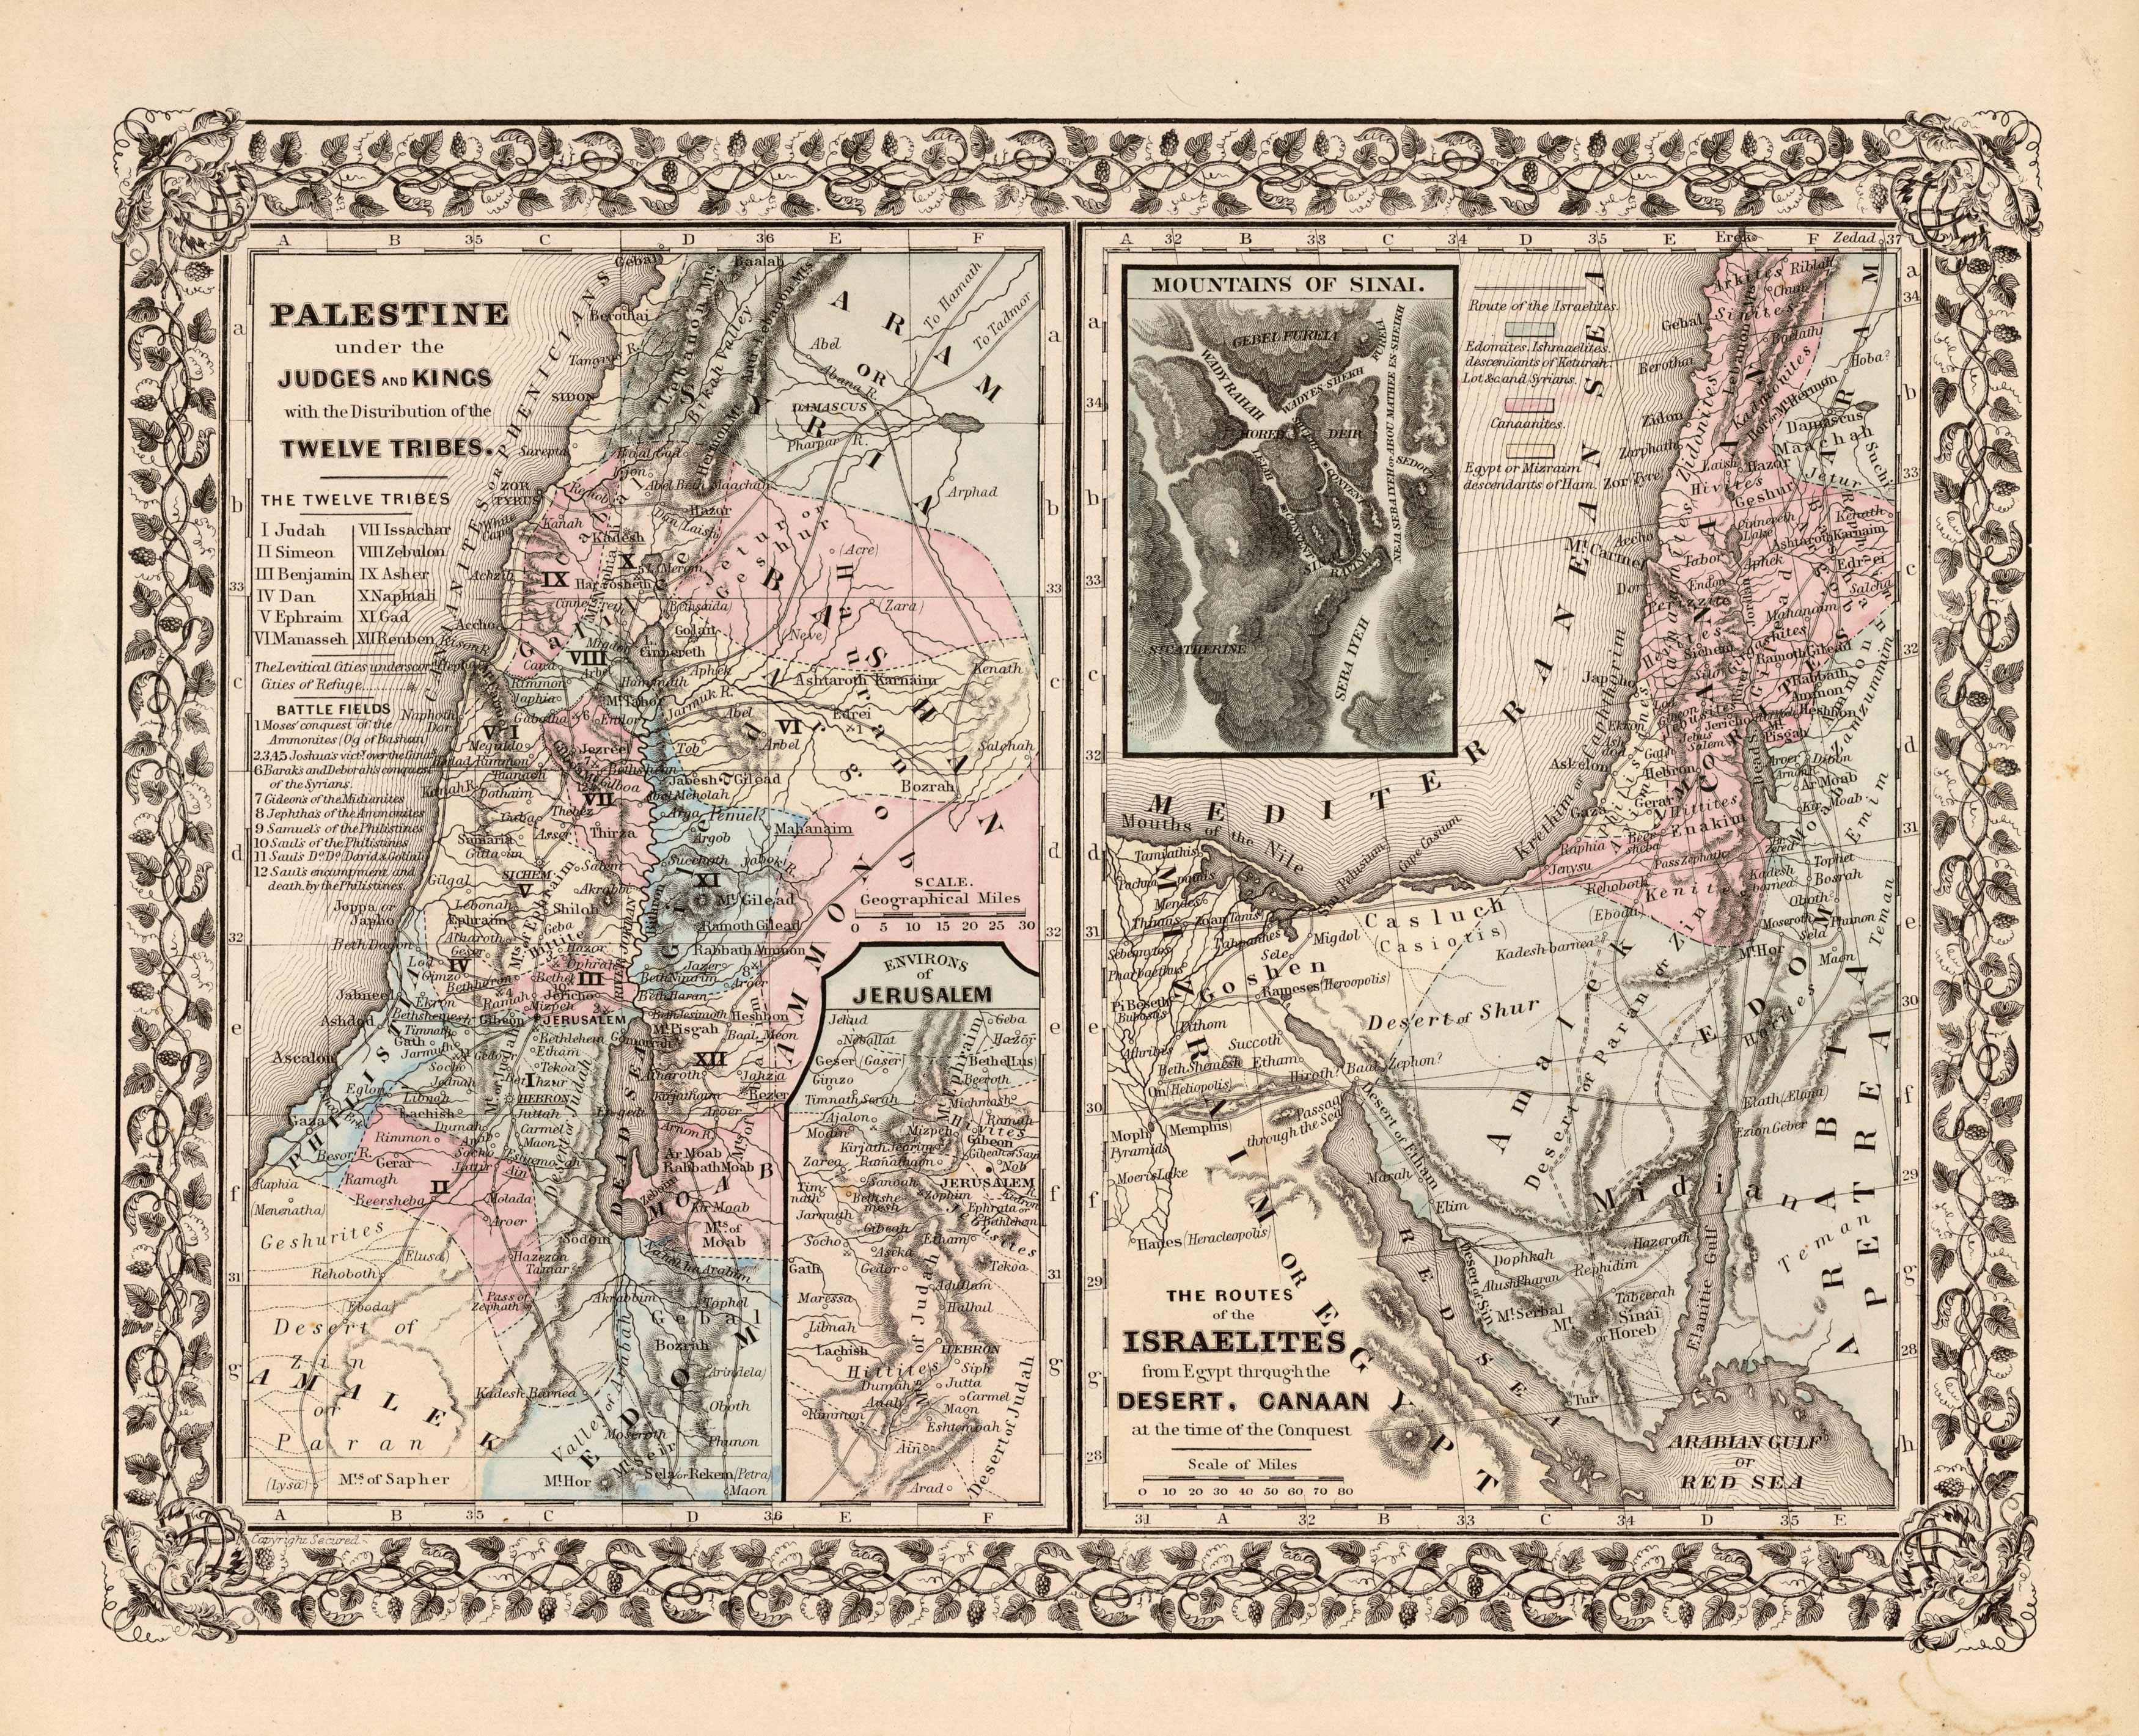 Palestine under the Judges and Kings with the Distribution of the Twelve Tribes; Environs of Jerusalem; The Routes of the Israelites from Egypt through the Desert Canaan at the time of the Conquest